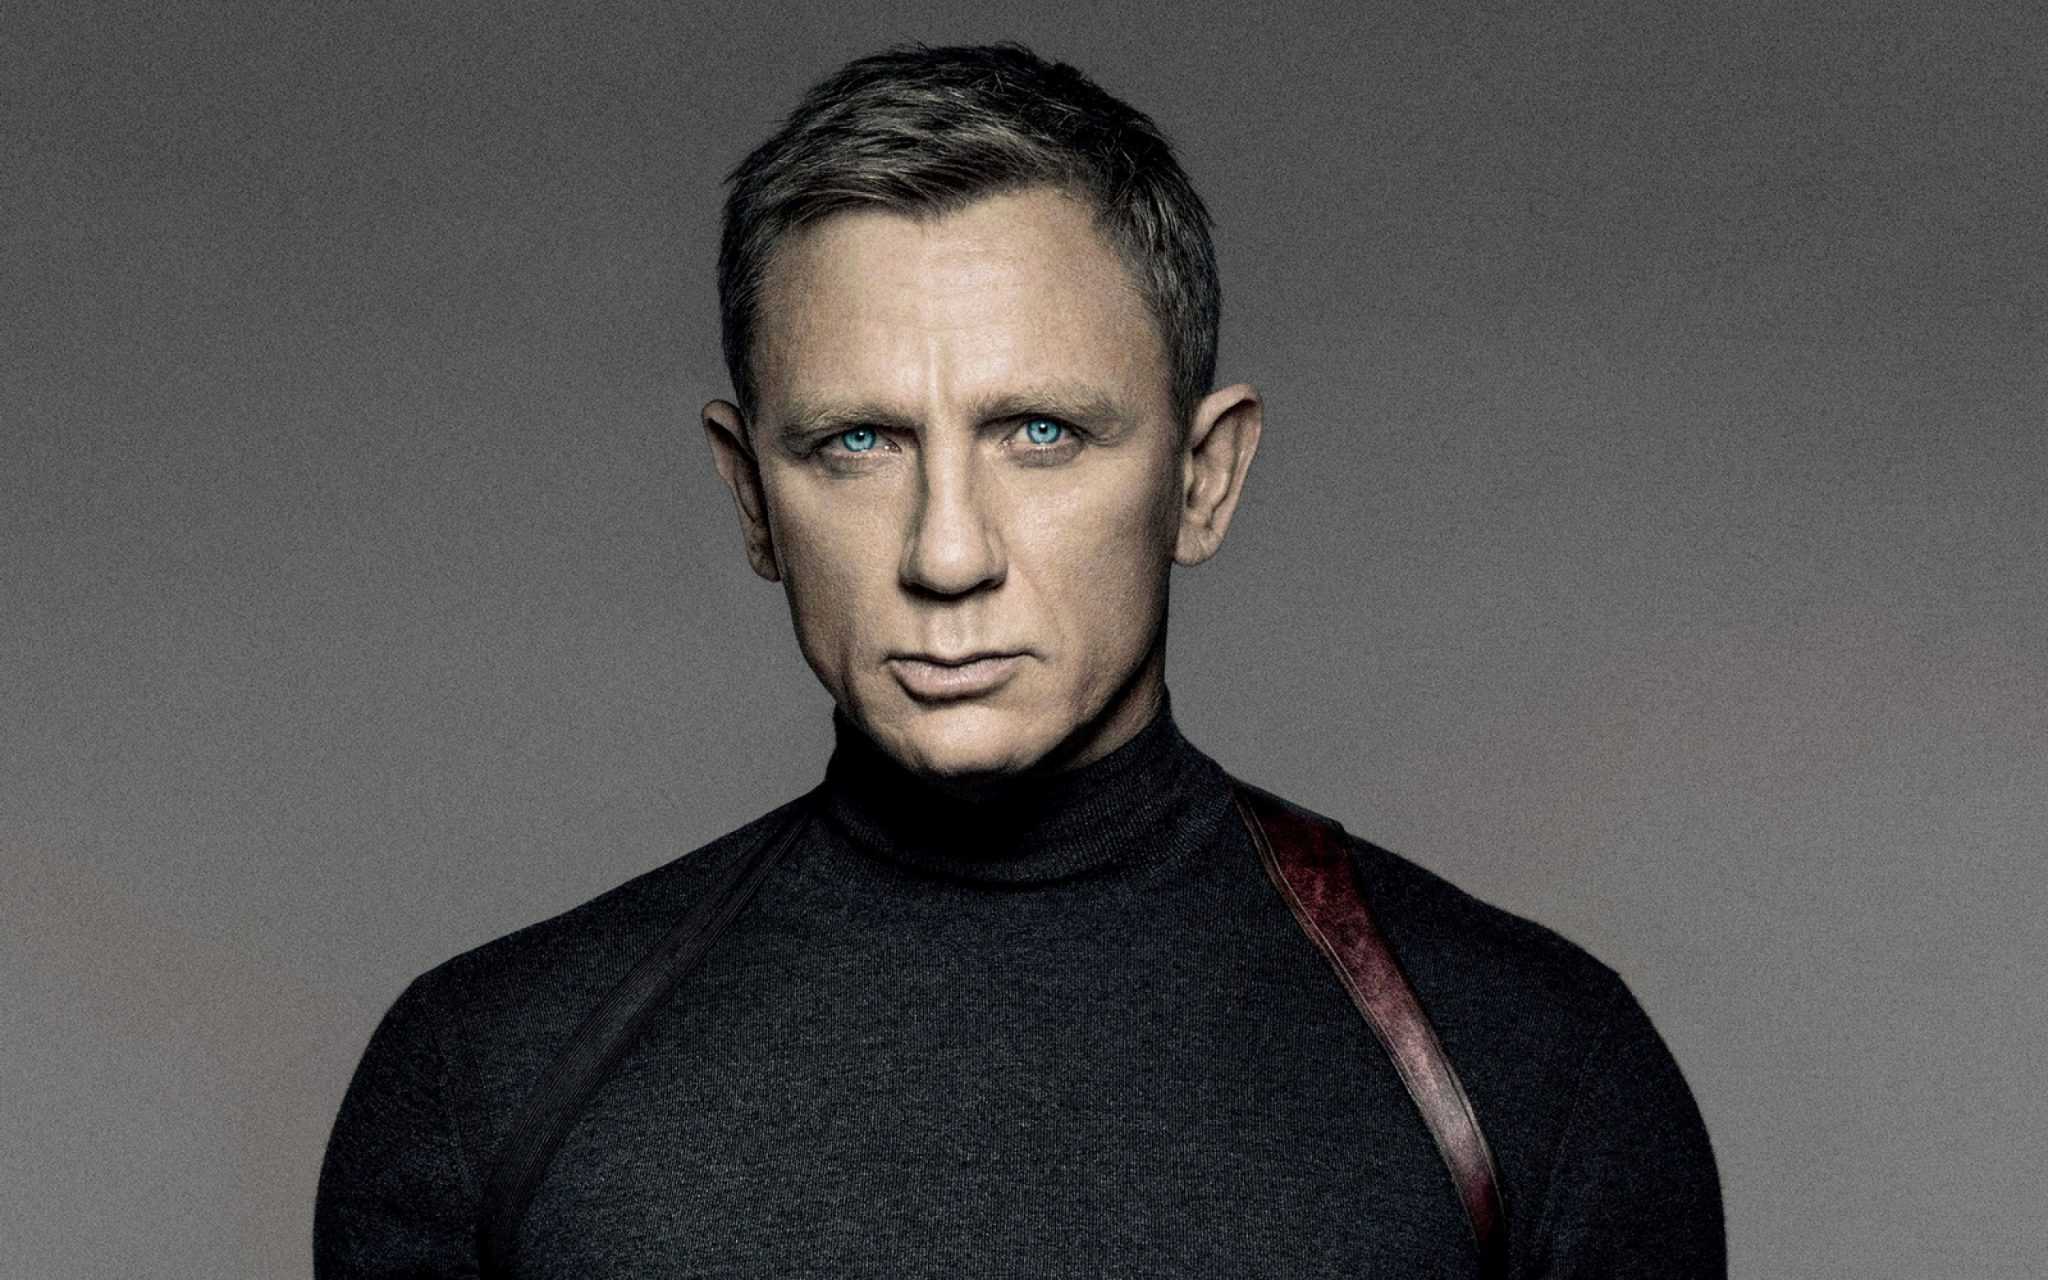 spectre_daniel_craig_james_bond_2015_101313_2560x1600